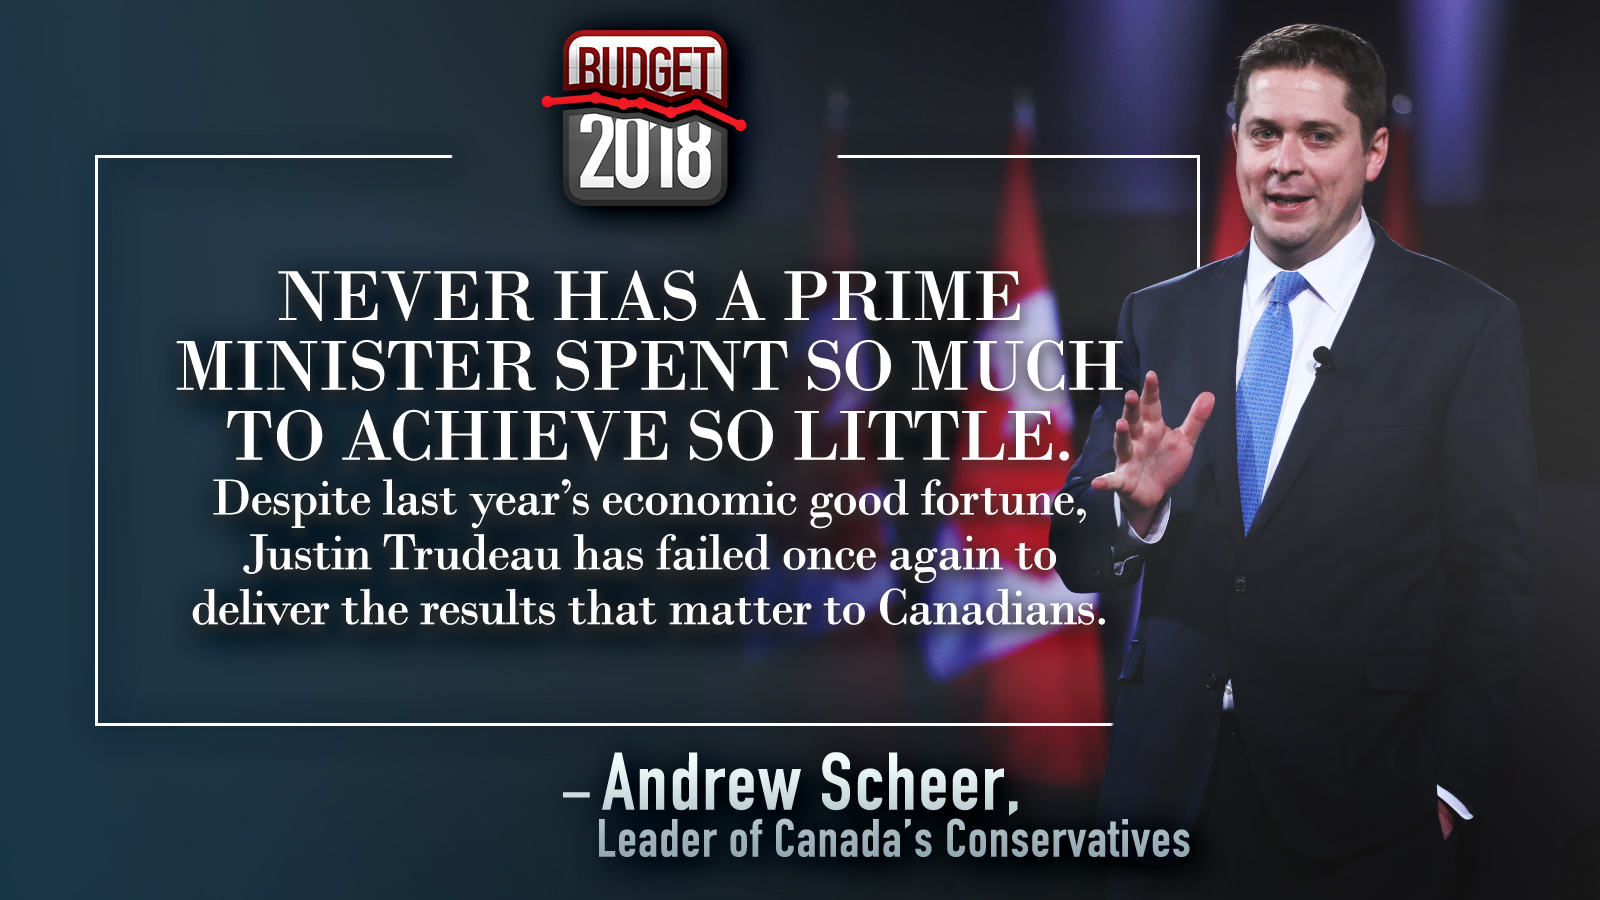 DEFICIT BUDGET FOLLOWS LIBERAL TREND OF ACCOMPLISHING LITTLE AT GREAT EXPENSE